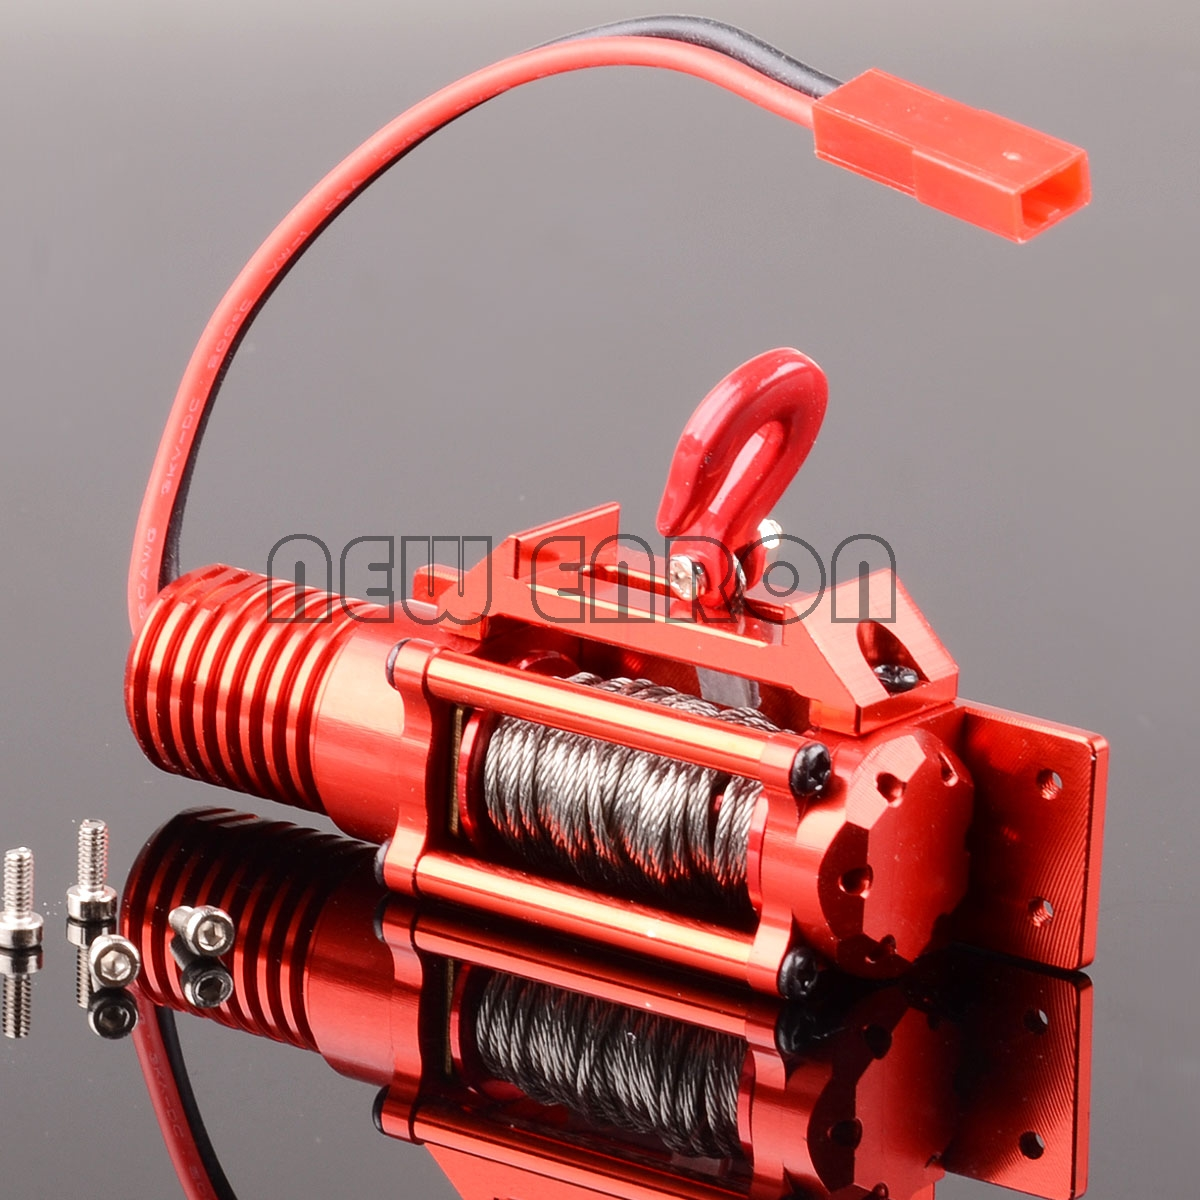 BLACK RC Alloy ELECTRIC WINCH FOR 1:10 Scale Rock Crawler Axial SCX10 Wraith D90